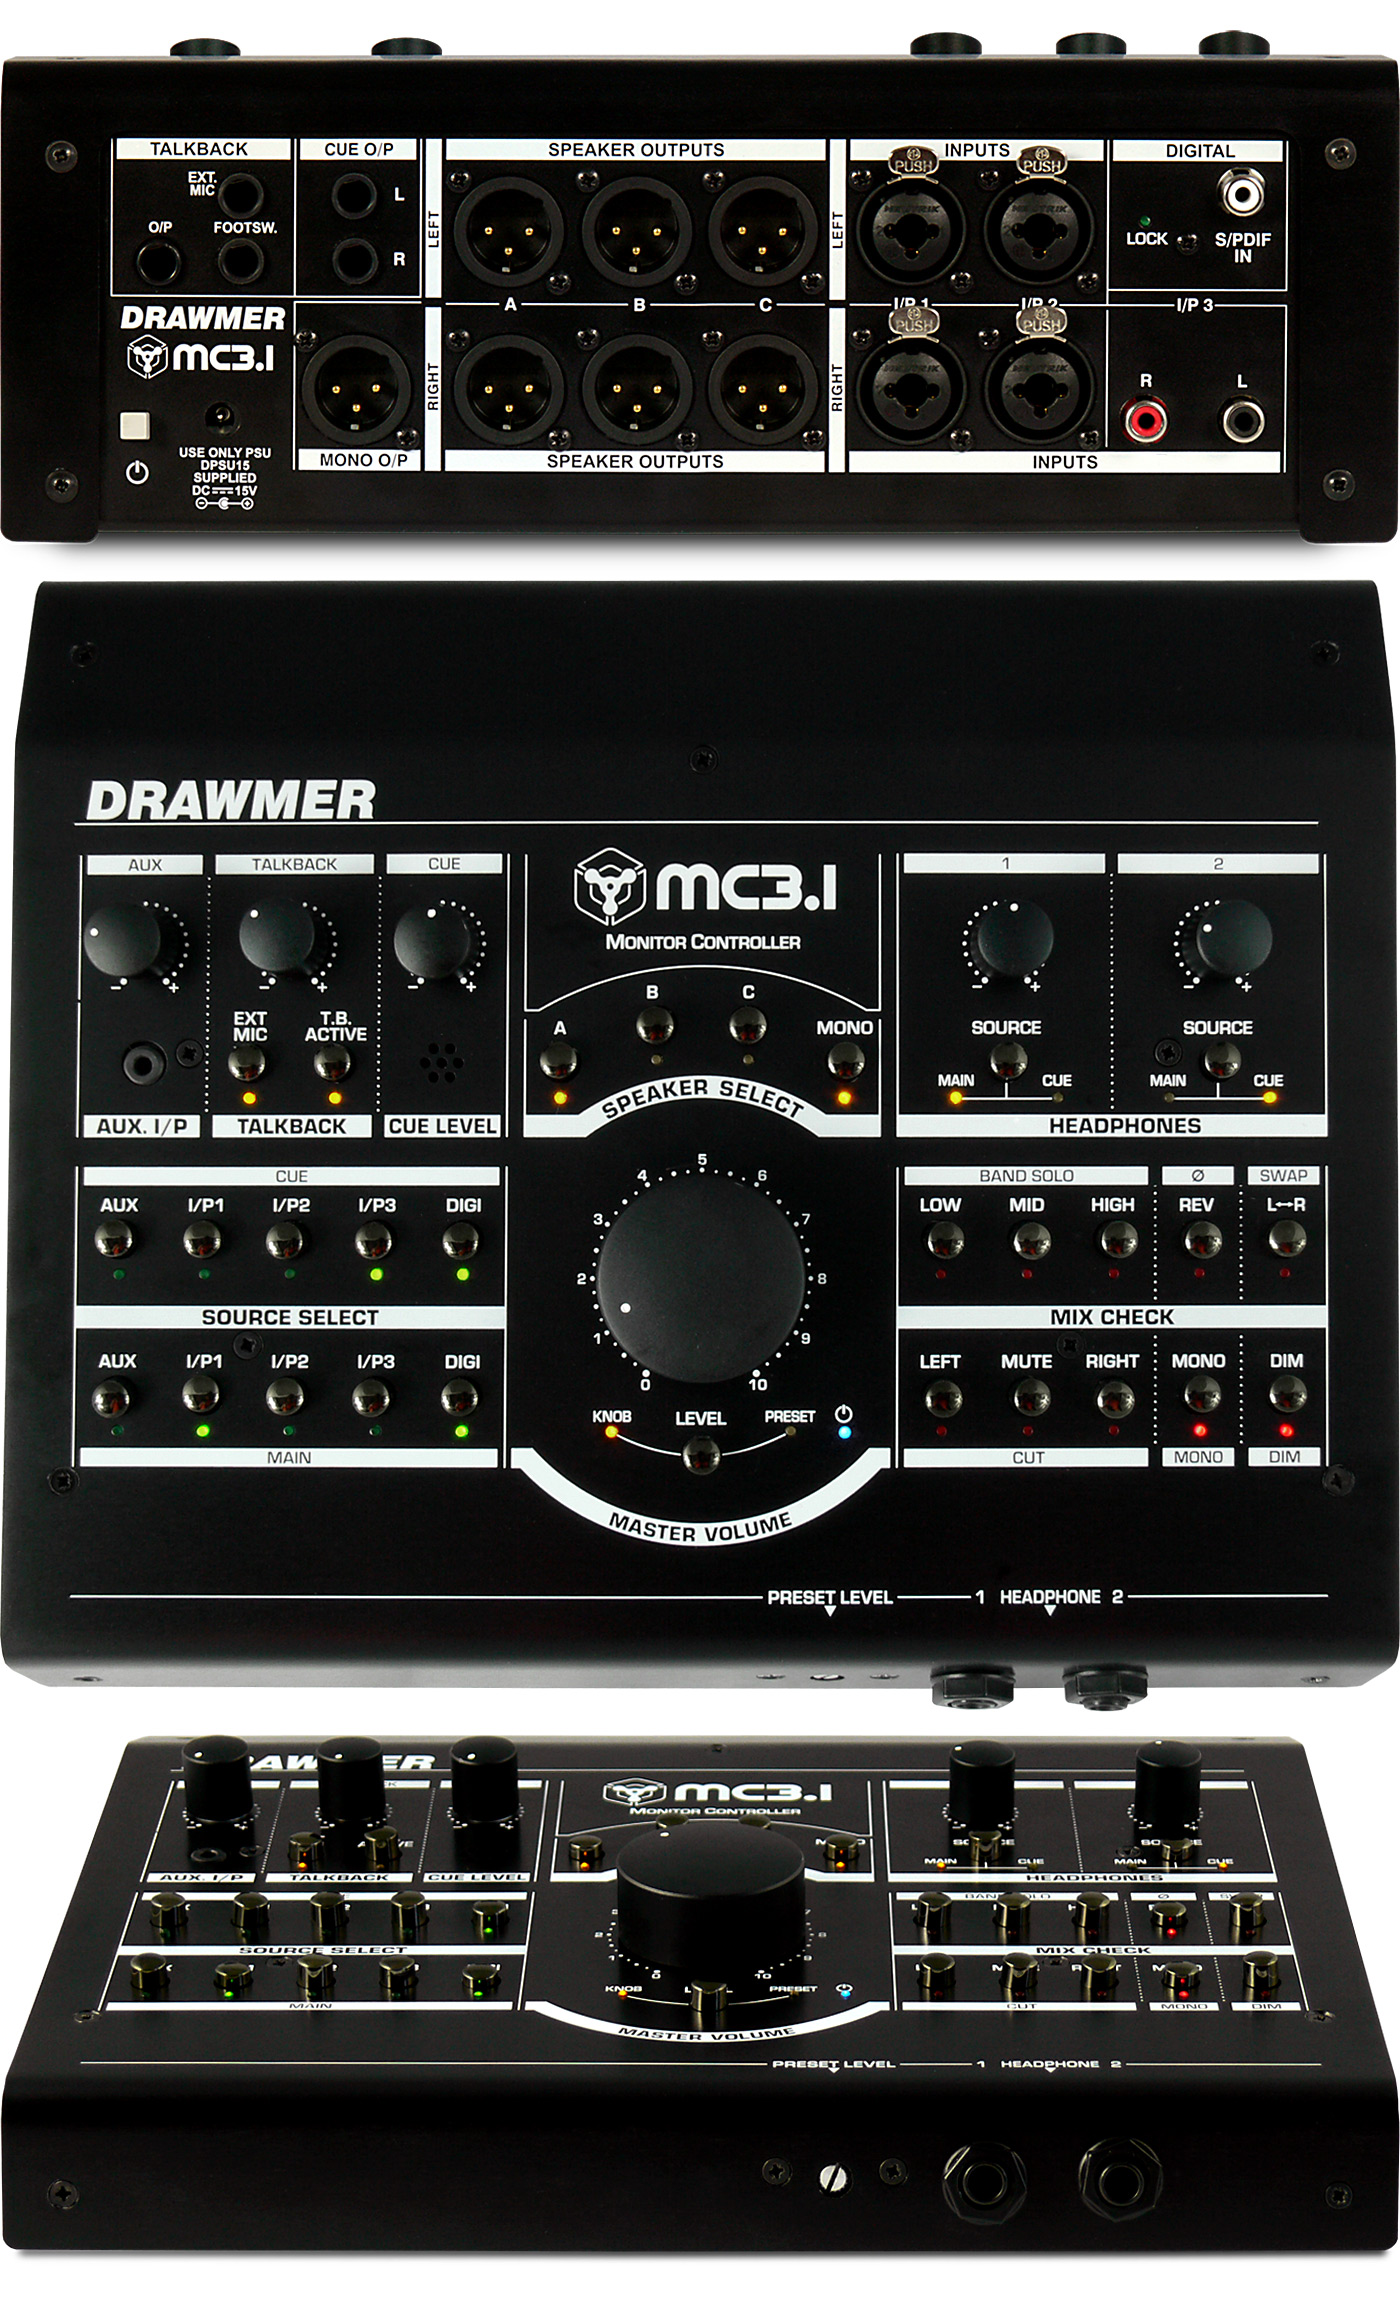 Drawmer MC3.1 KMR